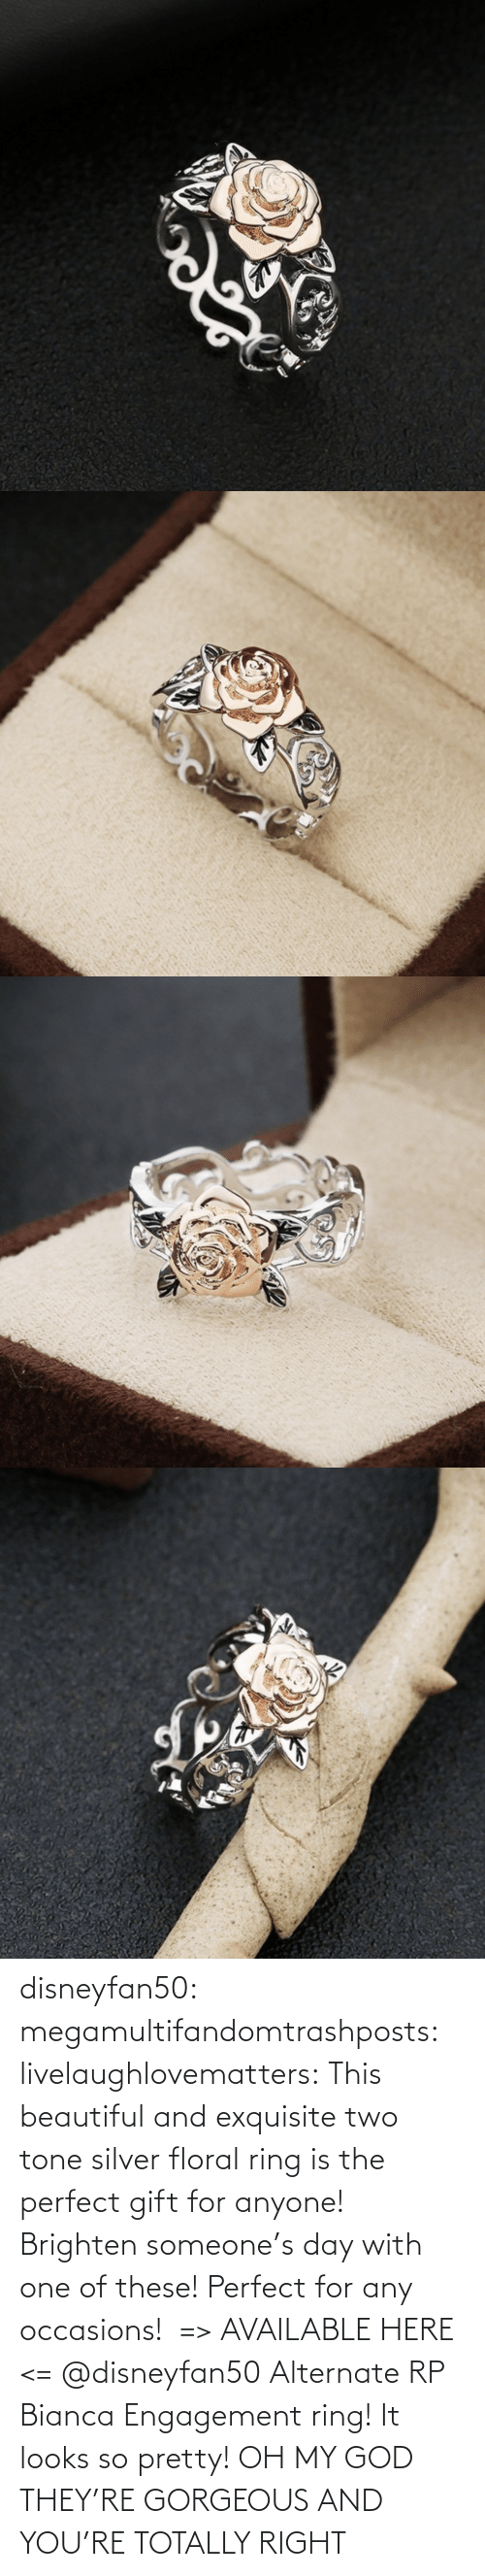 totally: disneyfan50:  megamultifandomtrashposts: livelaughlovematters:  This beautiful and exquisite two tone silver floral ring is the perfect gift for anyone! Brighten someone's day with one of these! Perfect for any occasions!  => AVAILABLE HERE <=    @disneyfan50 Alternate RP Bianca Engagement ring! It looks so pretty!  OH MY GOD THEY'RE GORGEOUS AND YOU'RE TOTALLY RIGHT